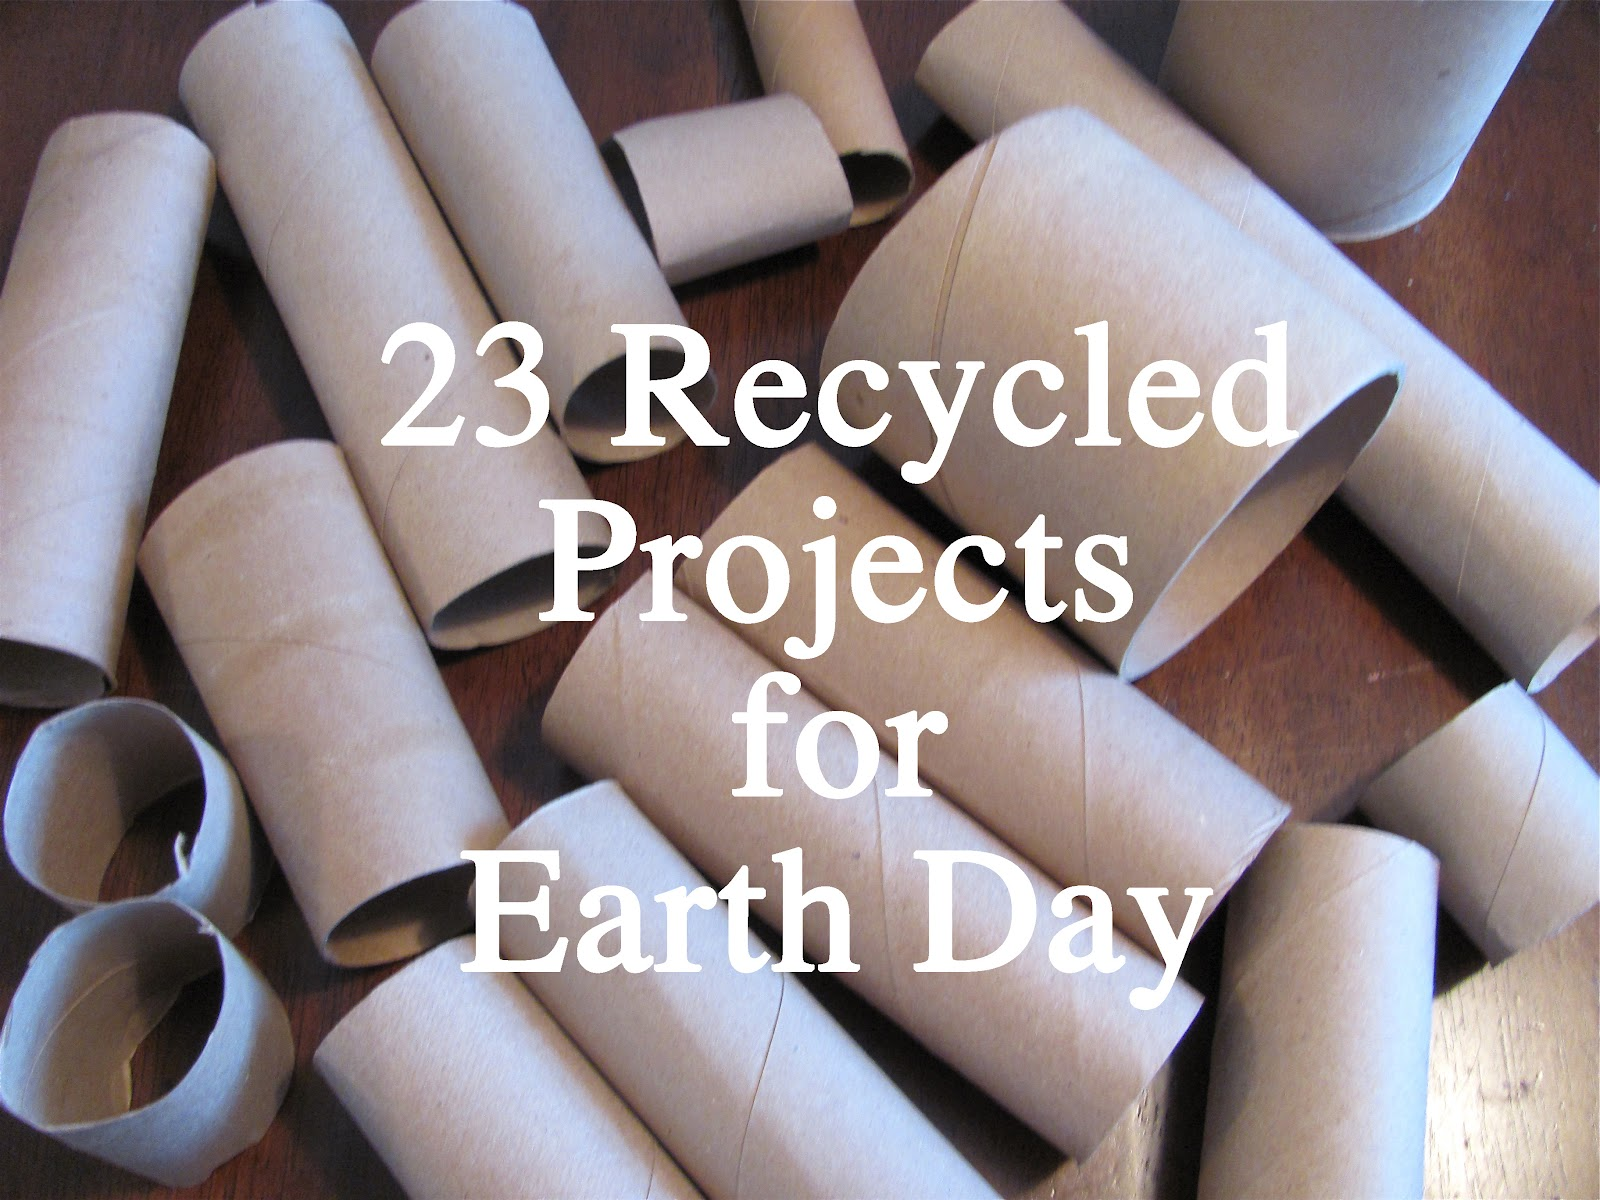 Recycled Projects Ideas For School